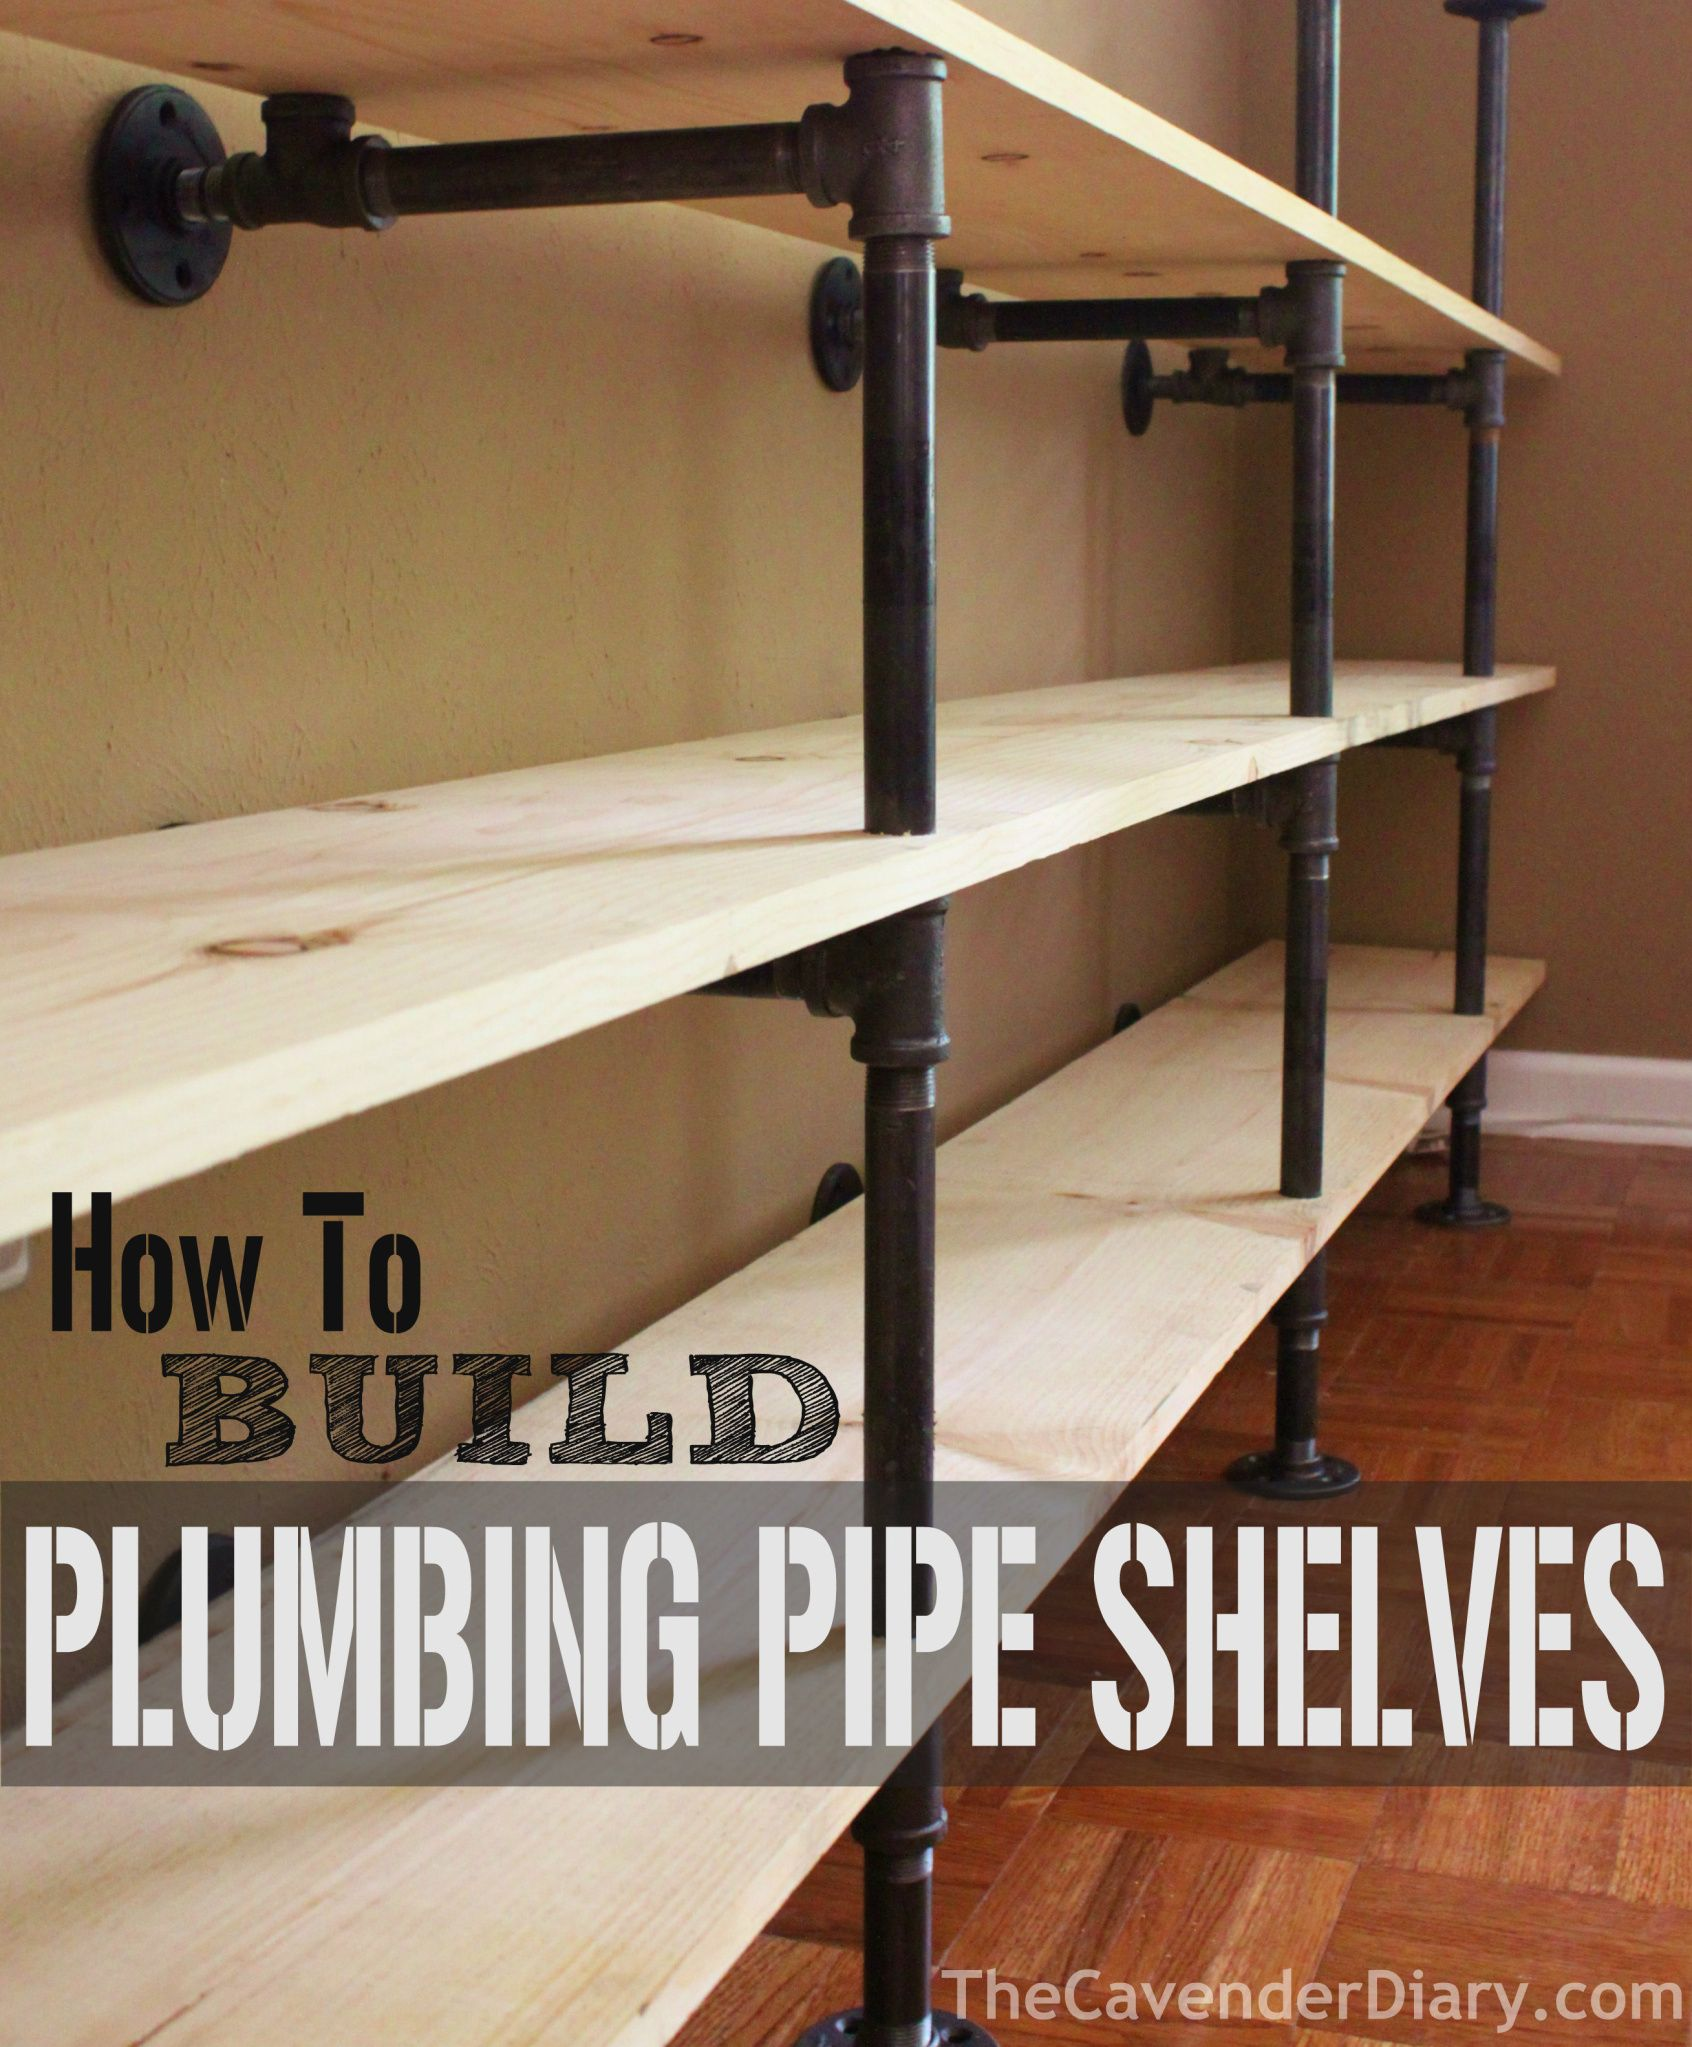 How to Build Plumbing Pipe Shelves from the Cavender Diary ...